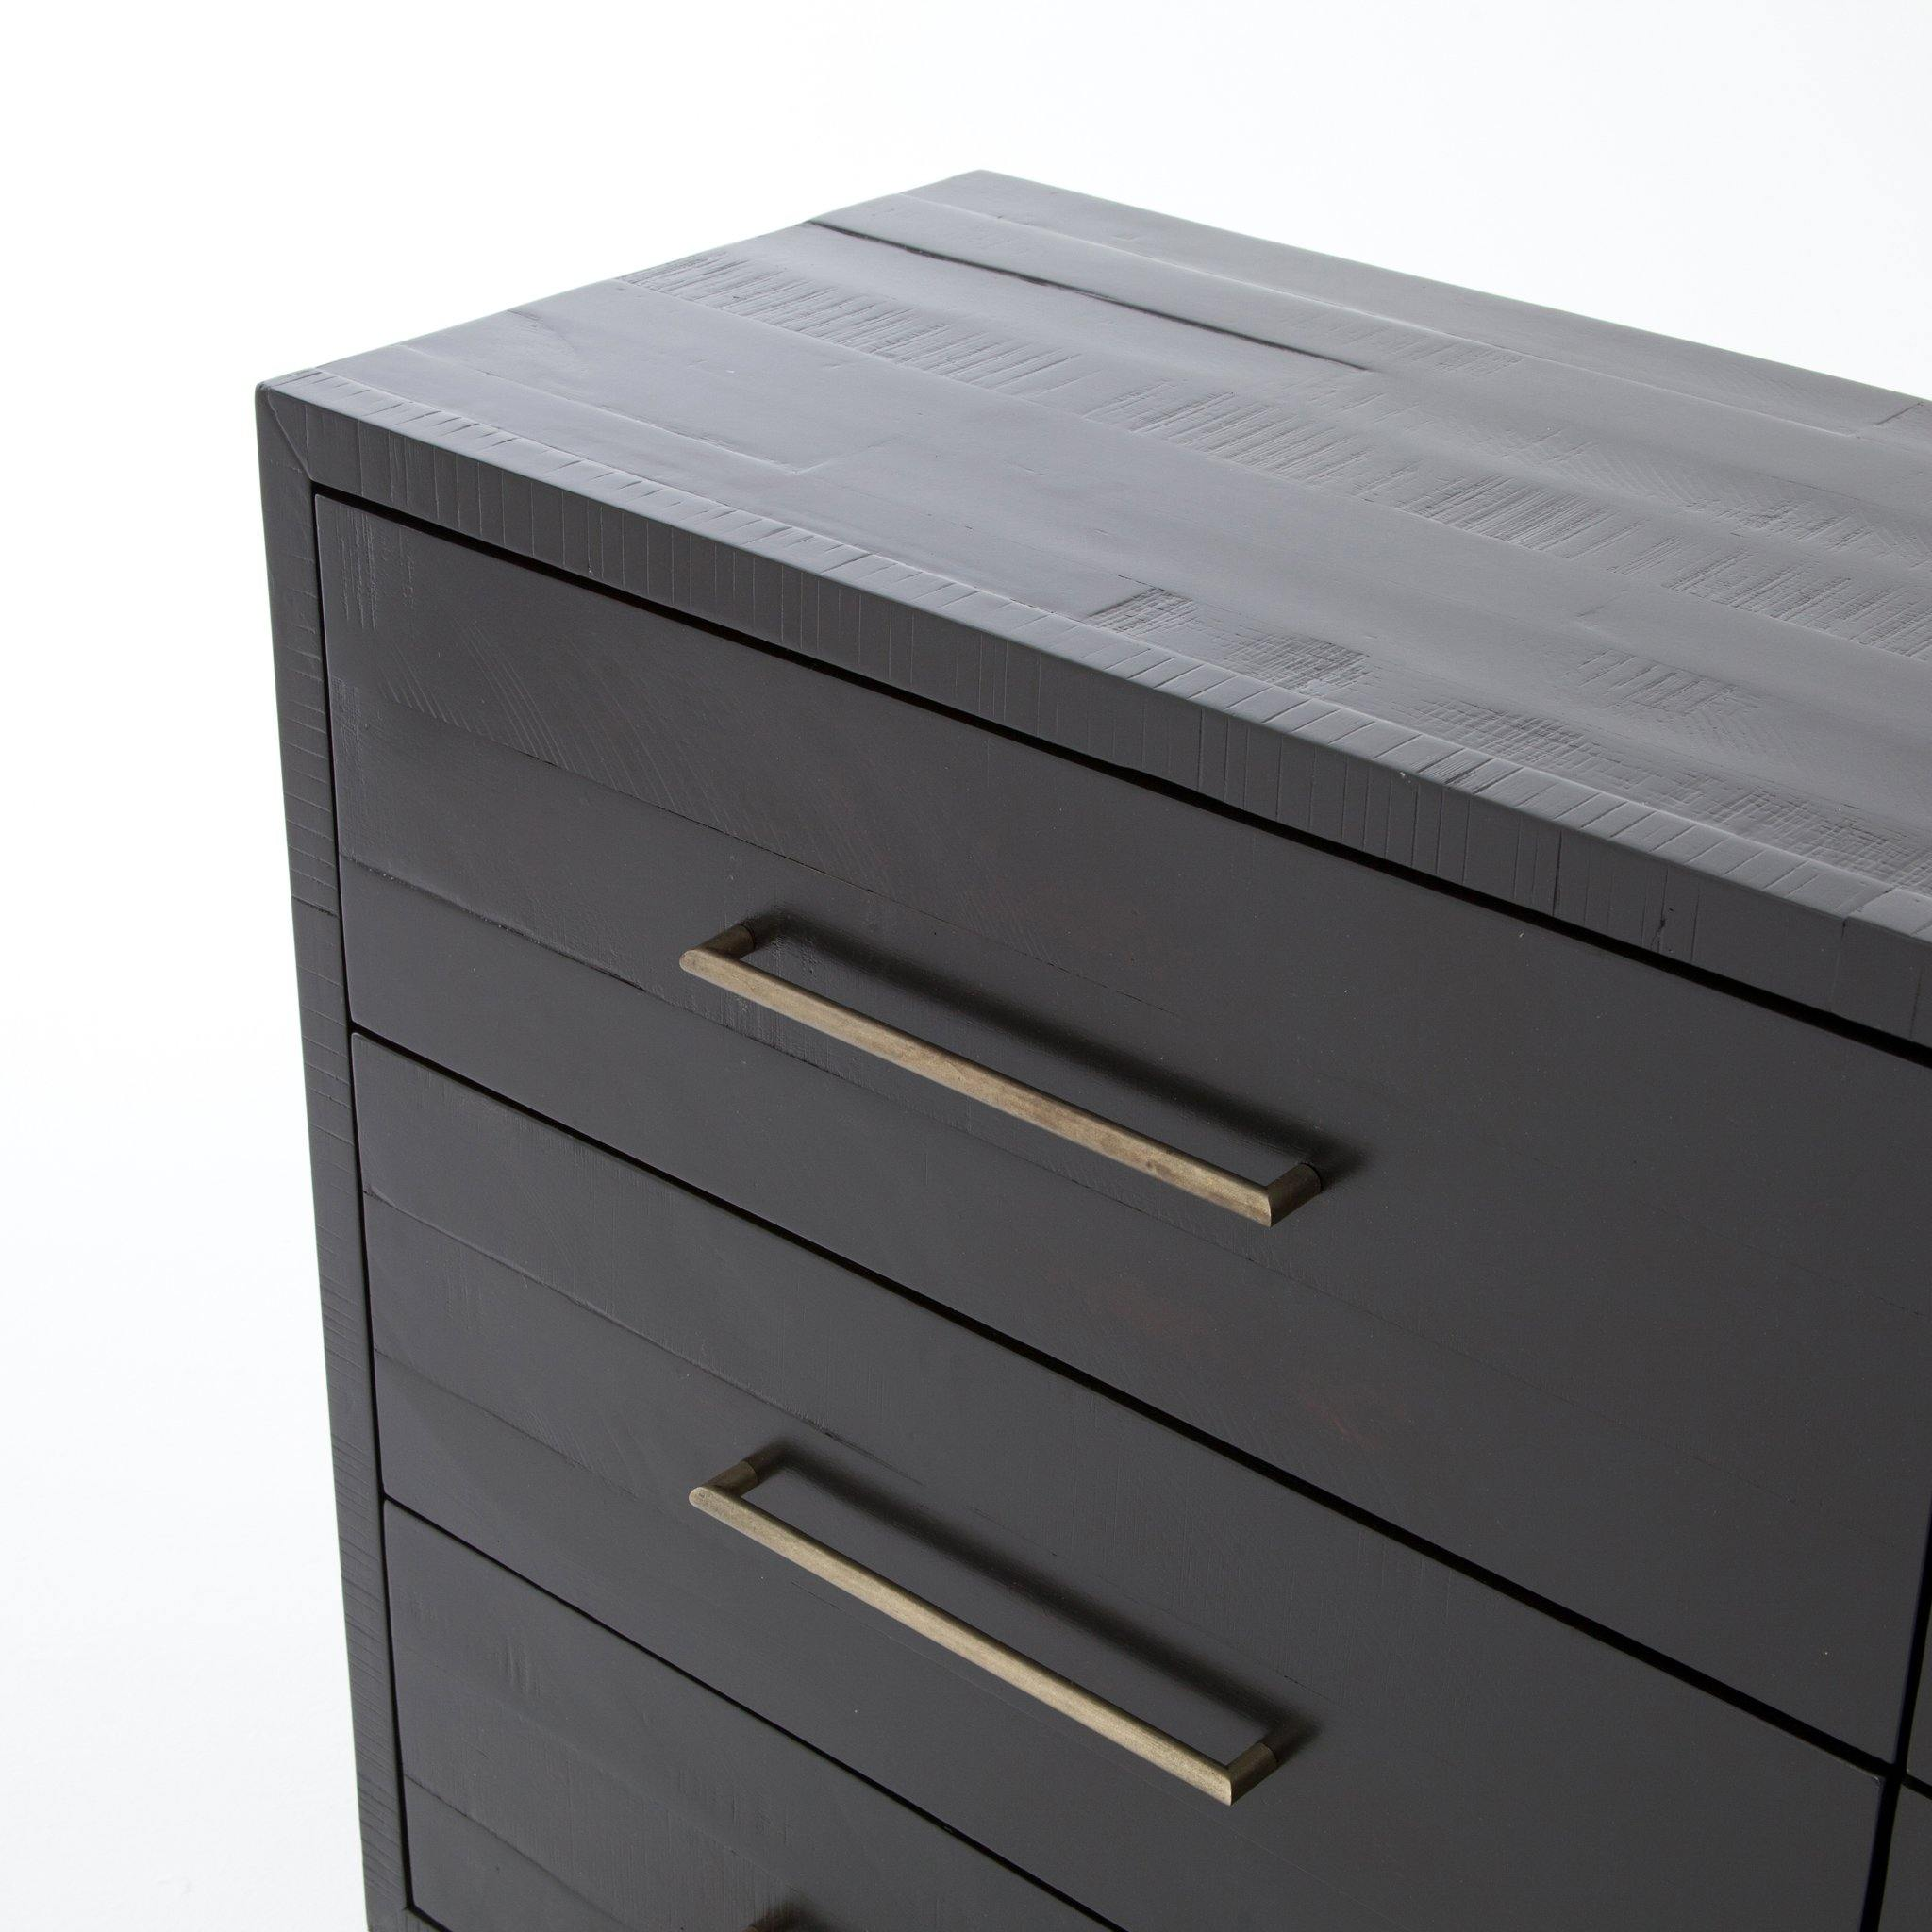 Suki 9 Drawer Dresser - Burnished Black - Reimagine Designs